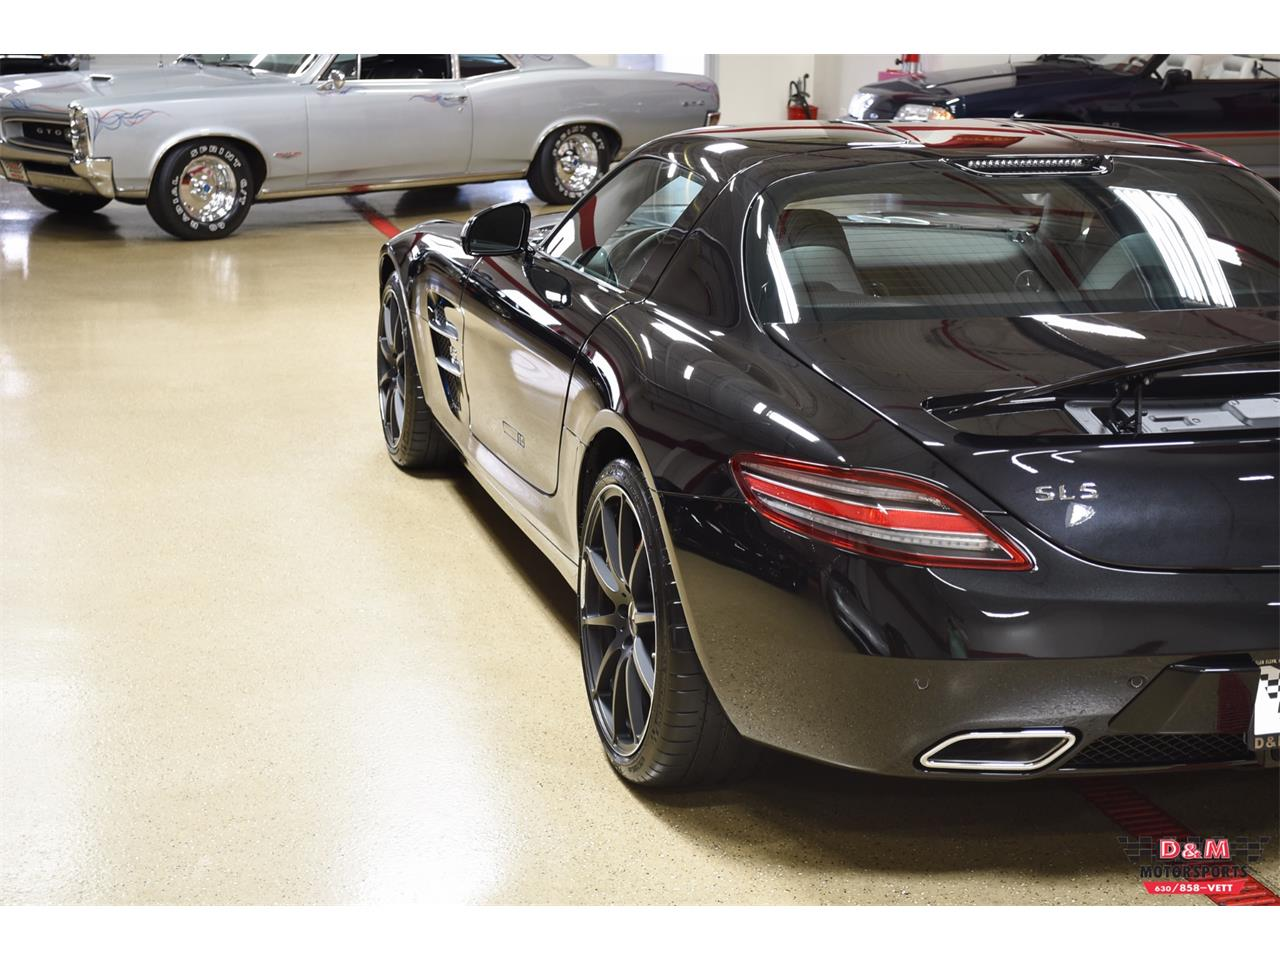 Large Picture of '12 Mercedes-Benz SLS AMG located in Illinois - $199,995.00 - PXCB